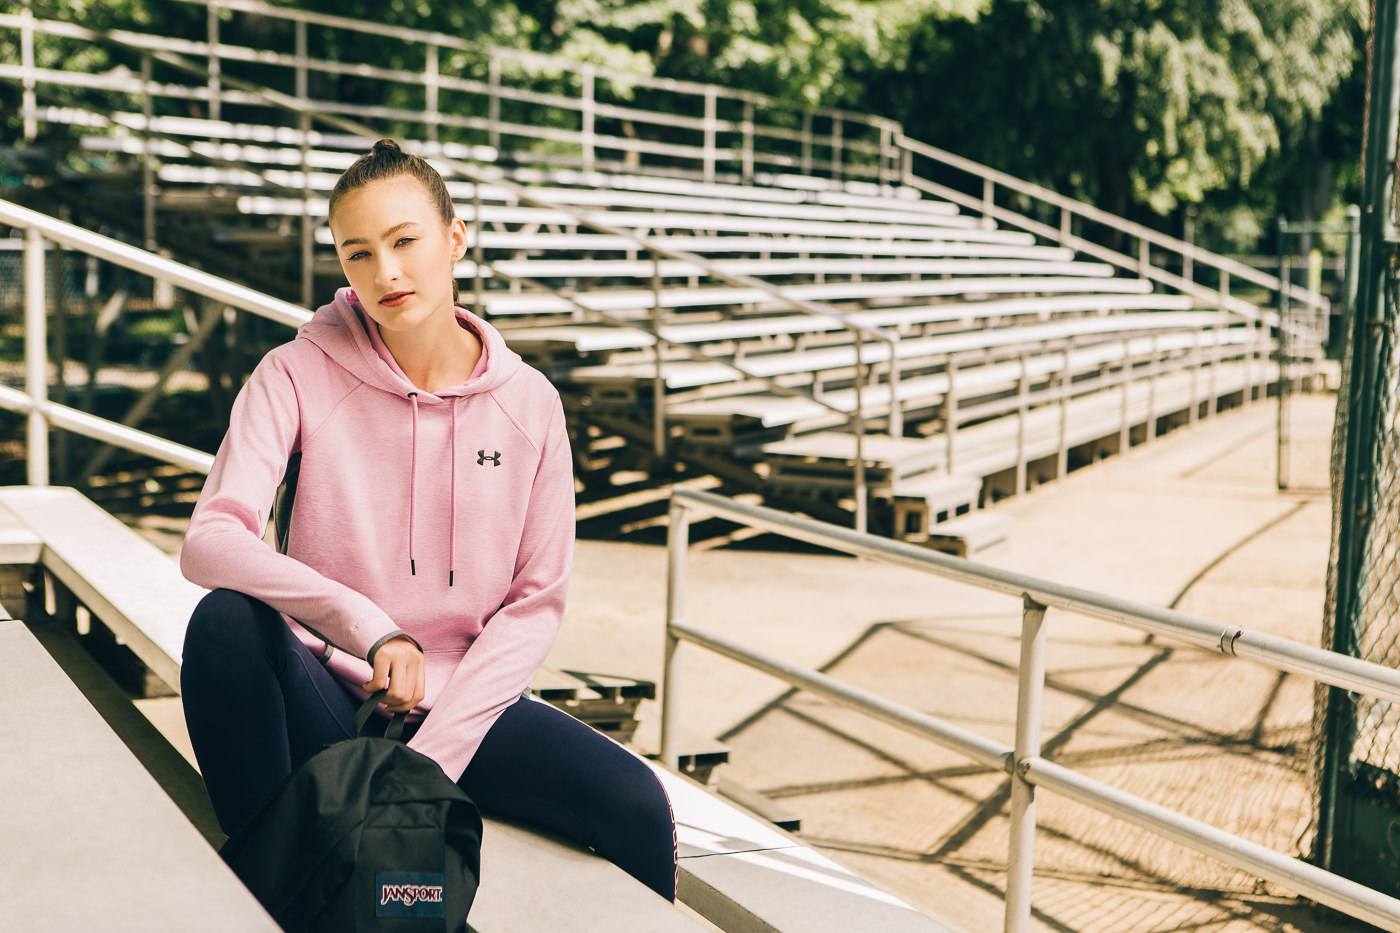 photo commerciale campagne back to school 2017 femmes sports experts